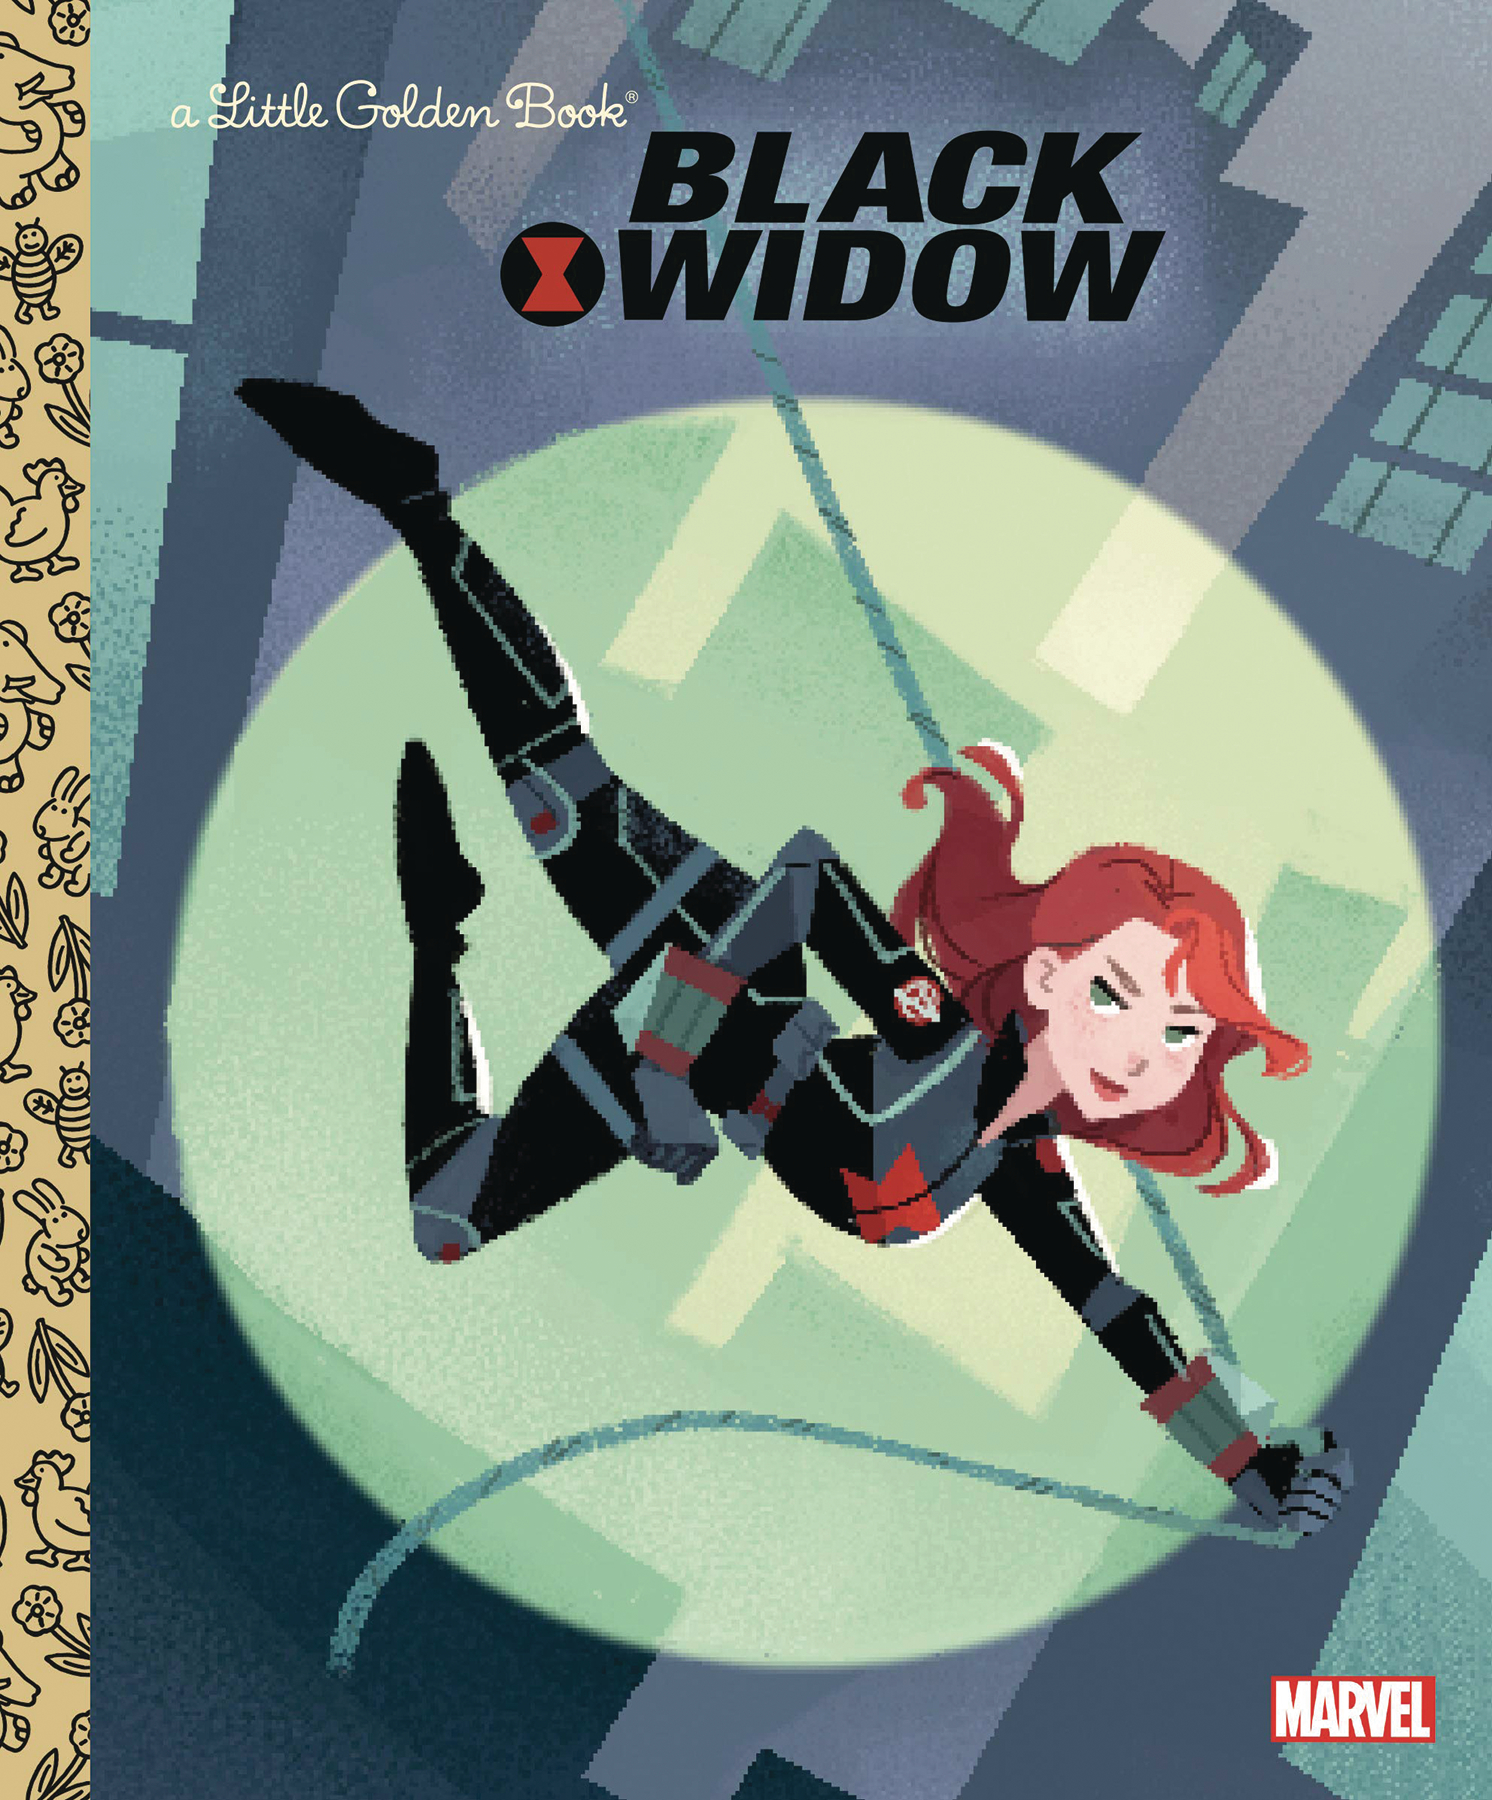 BLACK WIDOW LITTLE GOLDEN BOOK